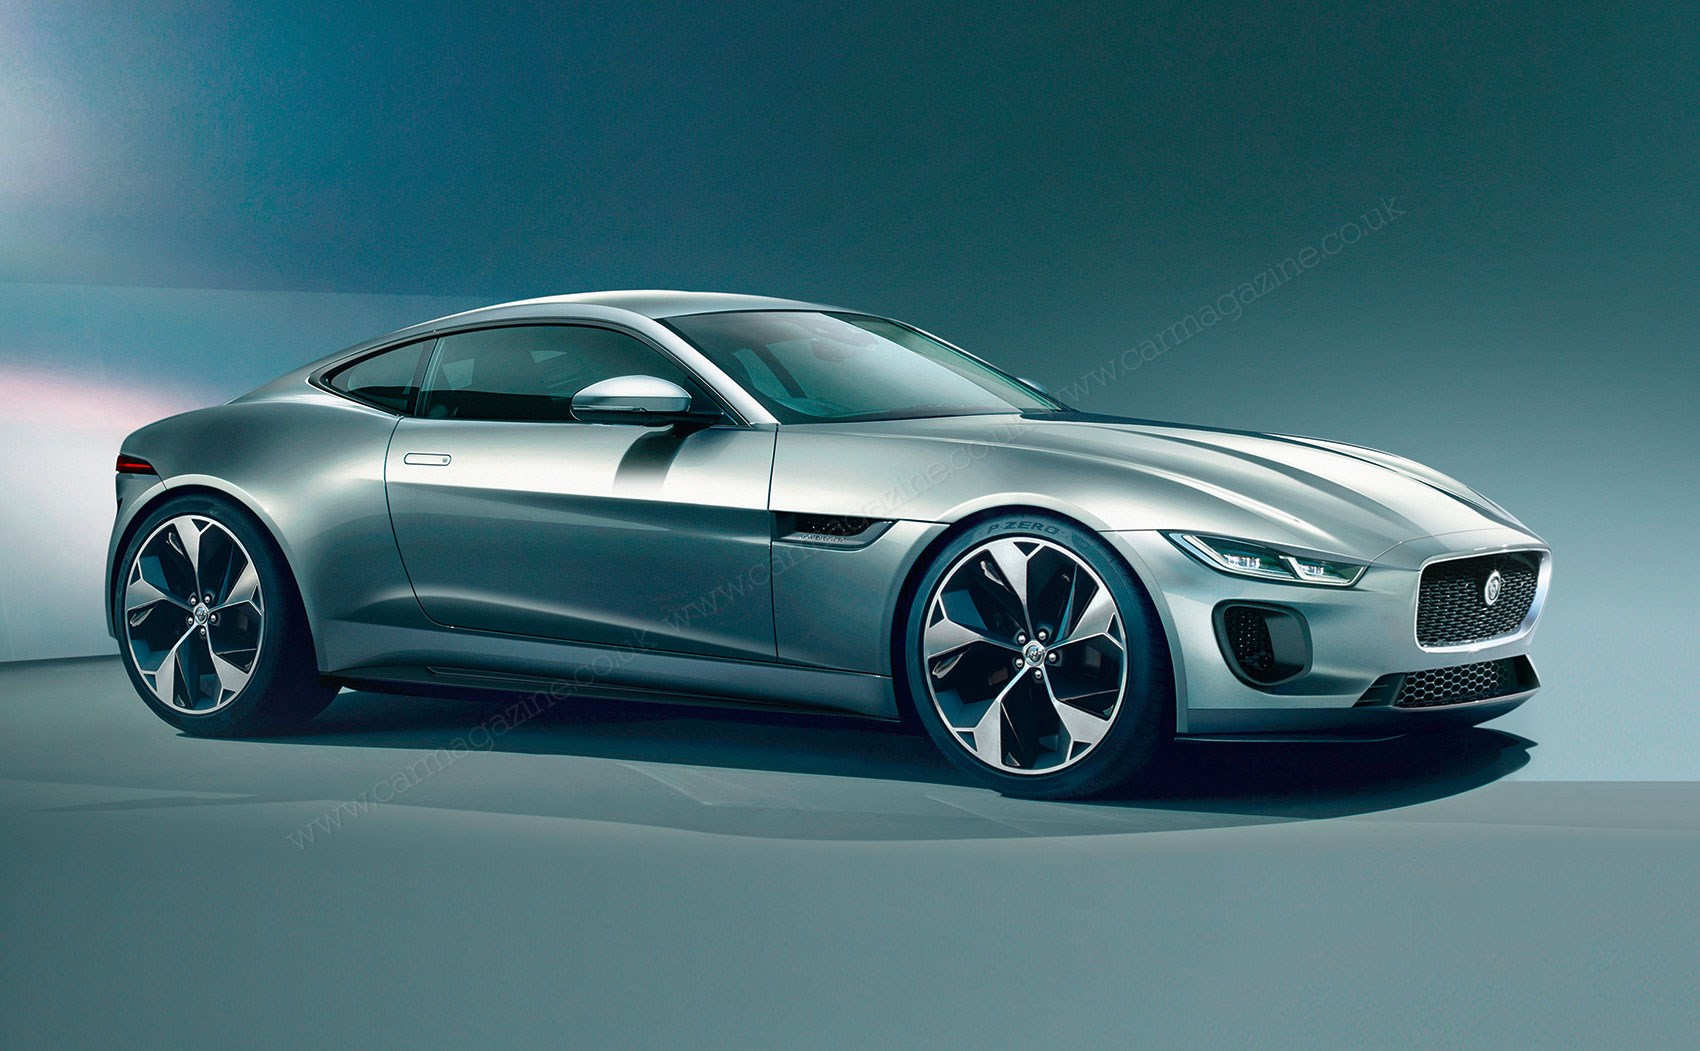 New 2020 Jaguar F-type: What You Need To Know